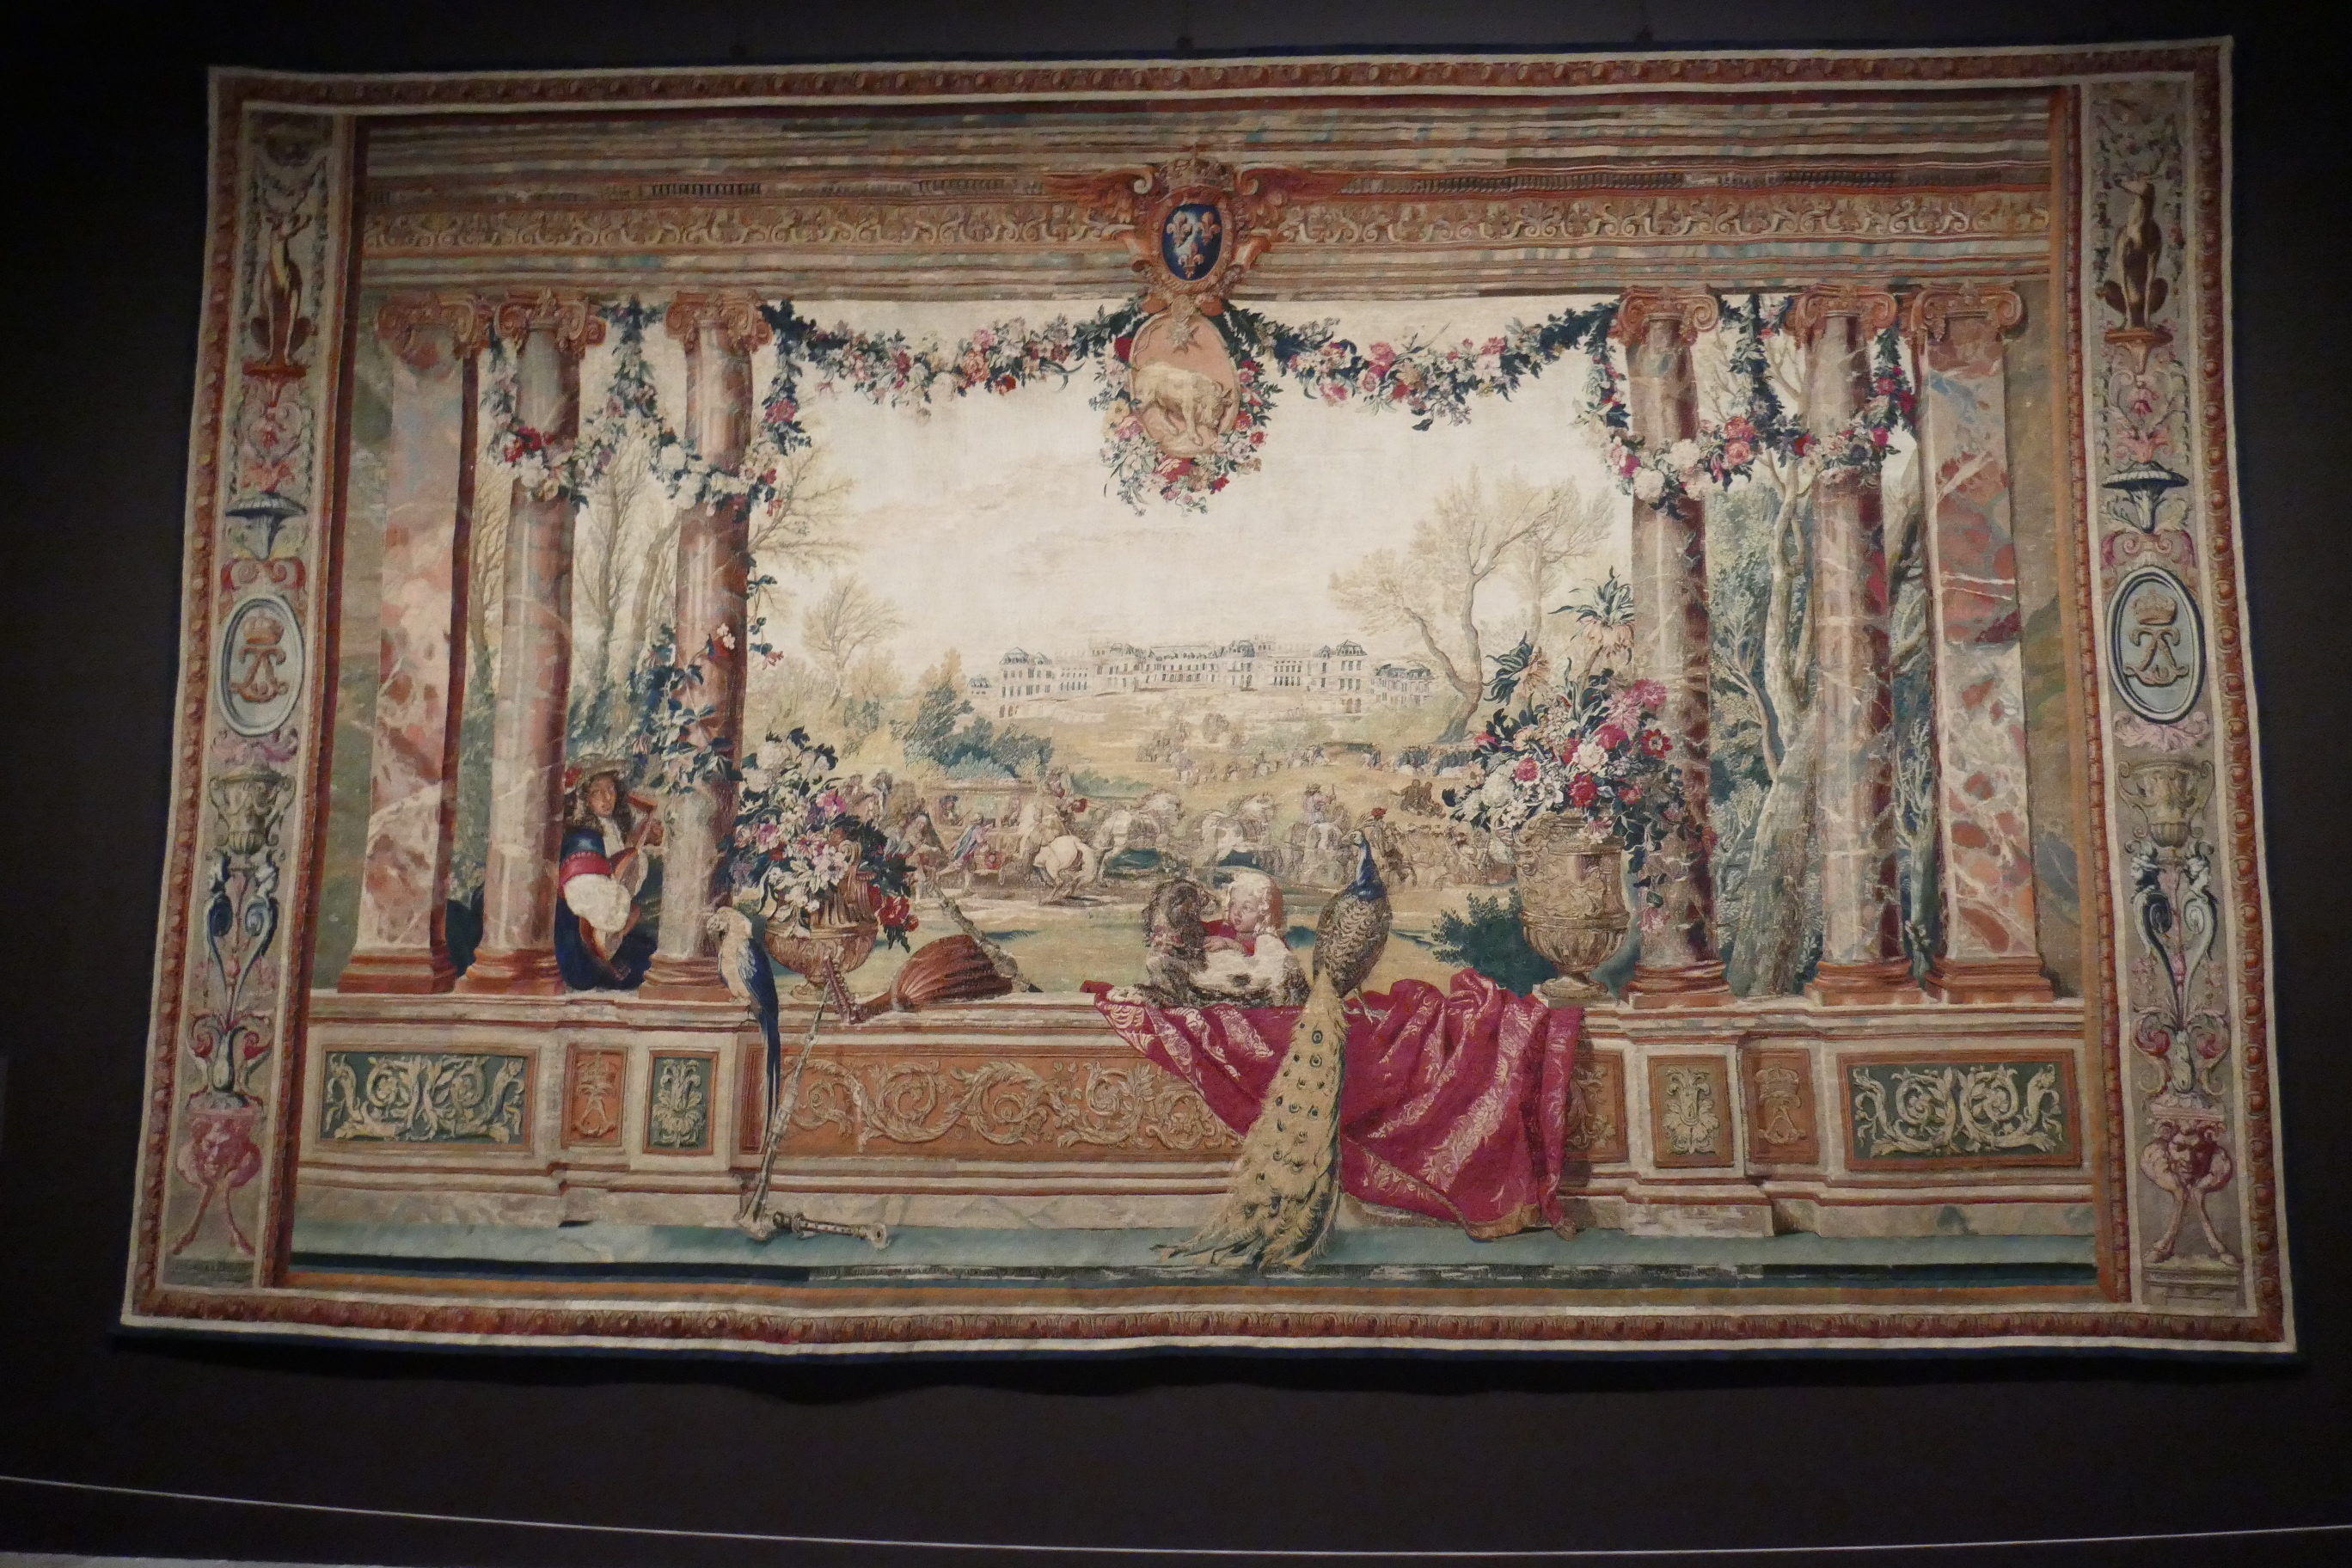 The vast tapestry hung at the beginning of Visitors to Versailles